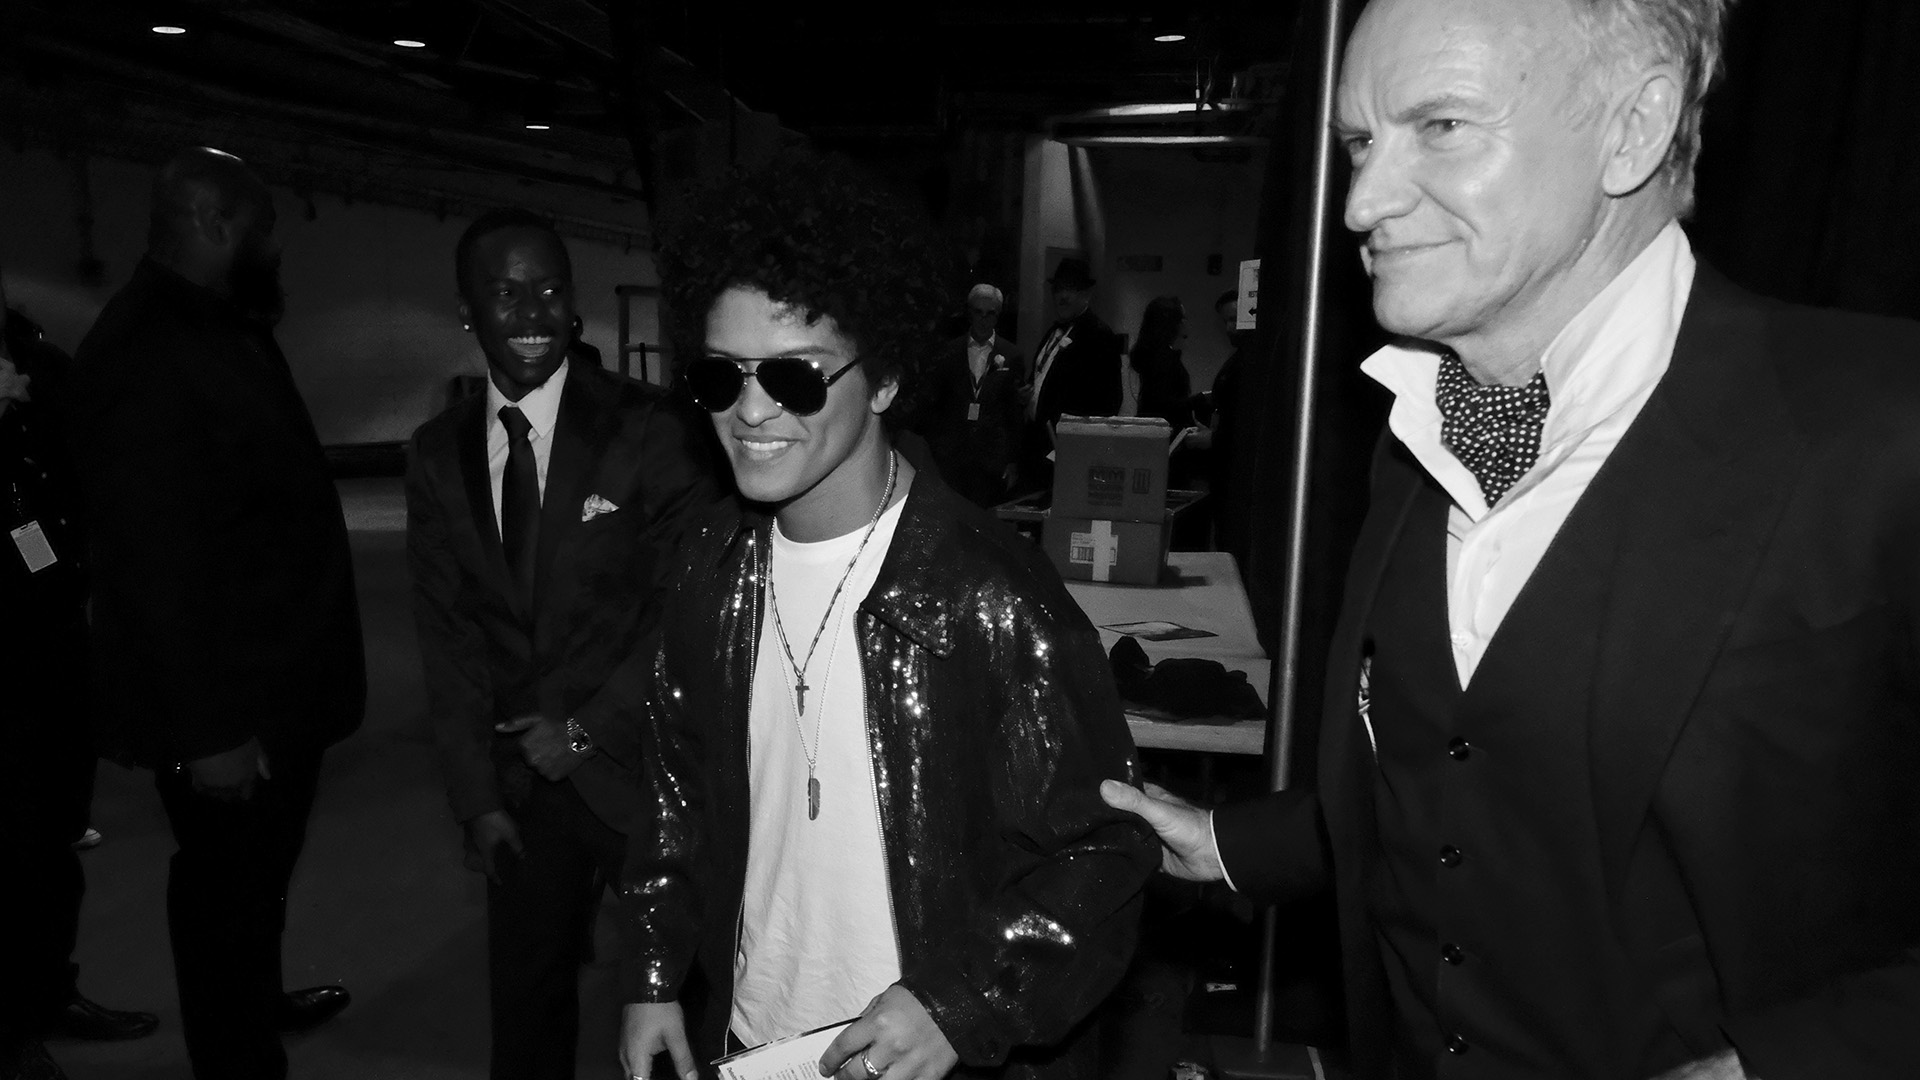 Bruno Mars, who took home multiple golden gramophones during the 60th Annual GRAMMY Awards, hangs backstage with Sting.